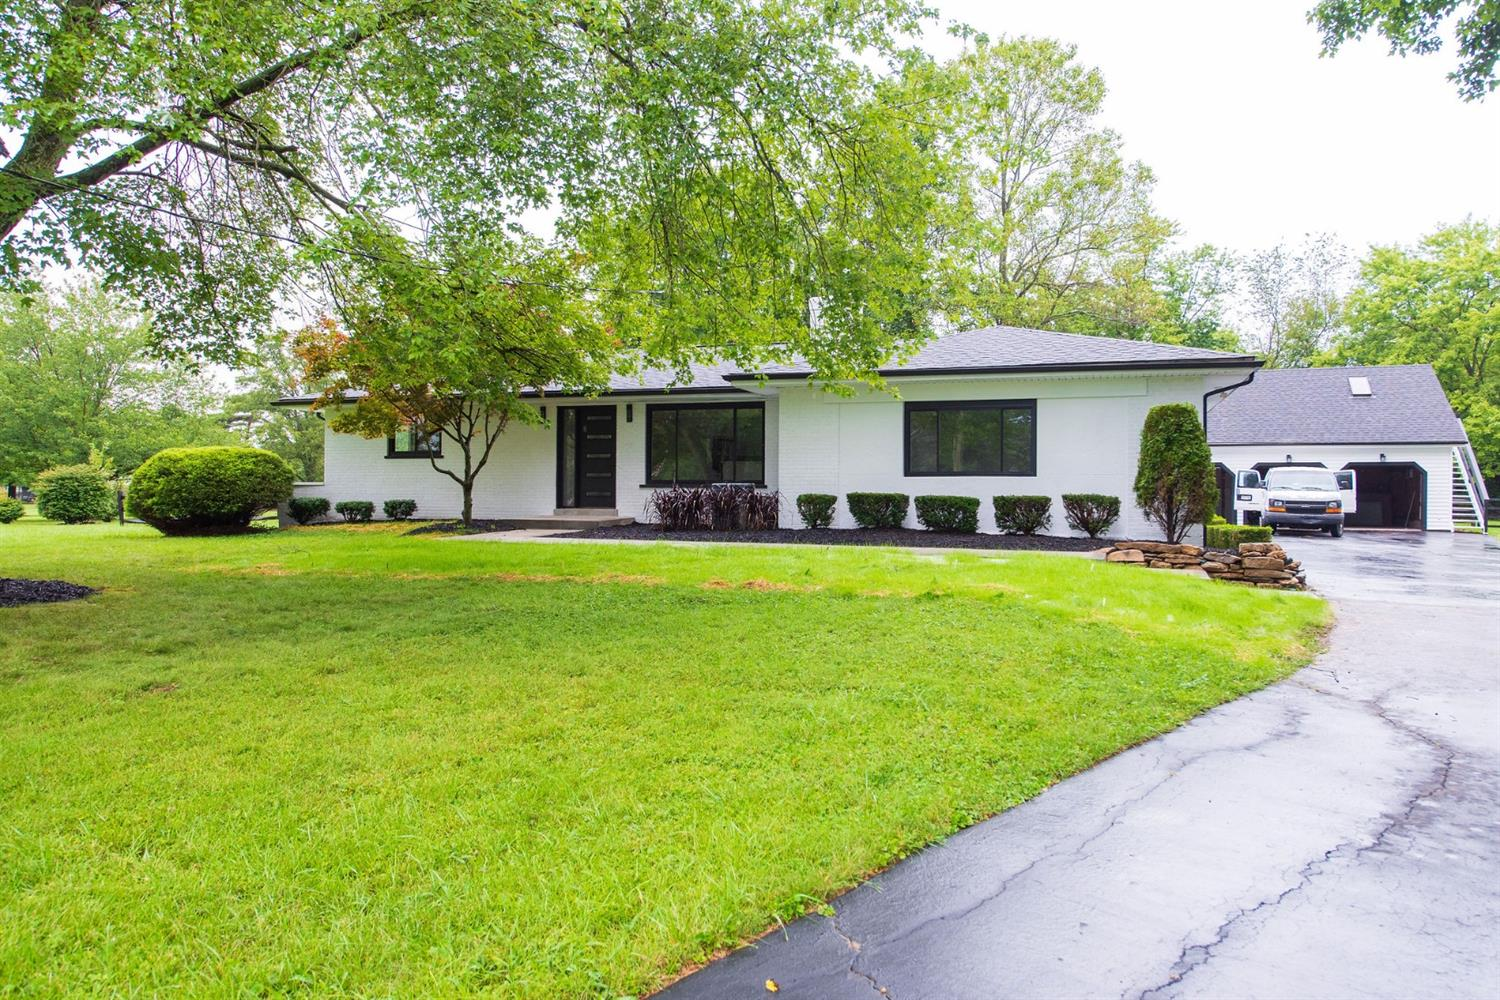 10047 Humphrey Road, Symmes Twp, Ohio 45242, 4 Bedrooms Bedrooms, 9 Rooms Rooms,3 BathroomsBathrooms,Single Family Residence,For Sale,Humphrey,1714077